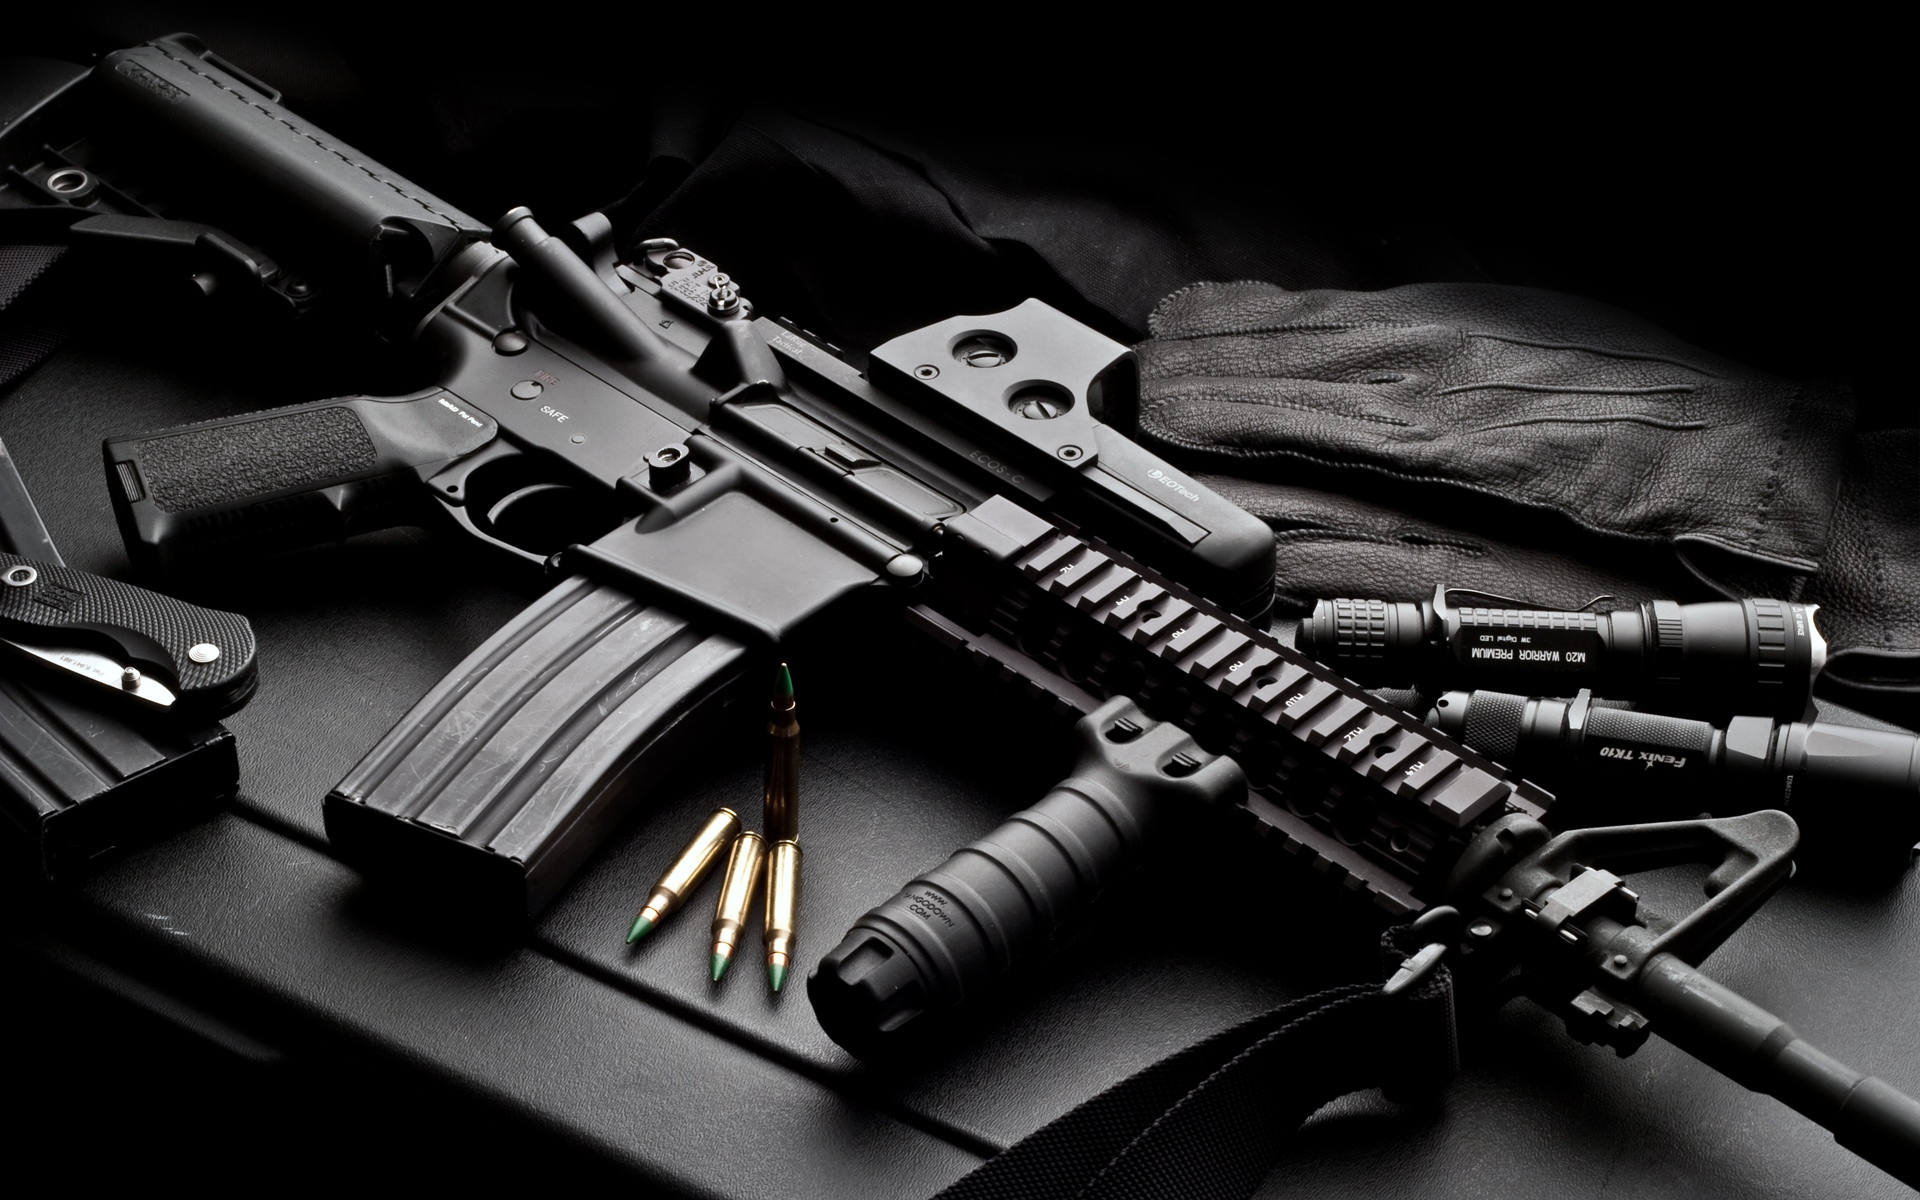 m16 gun wallpaper desktop - photo #38